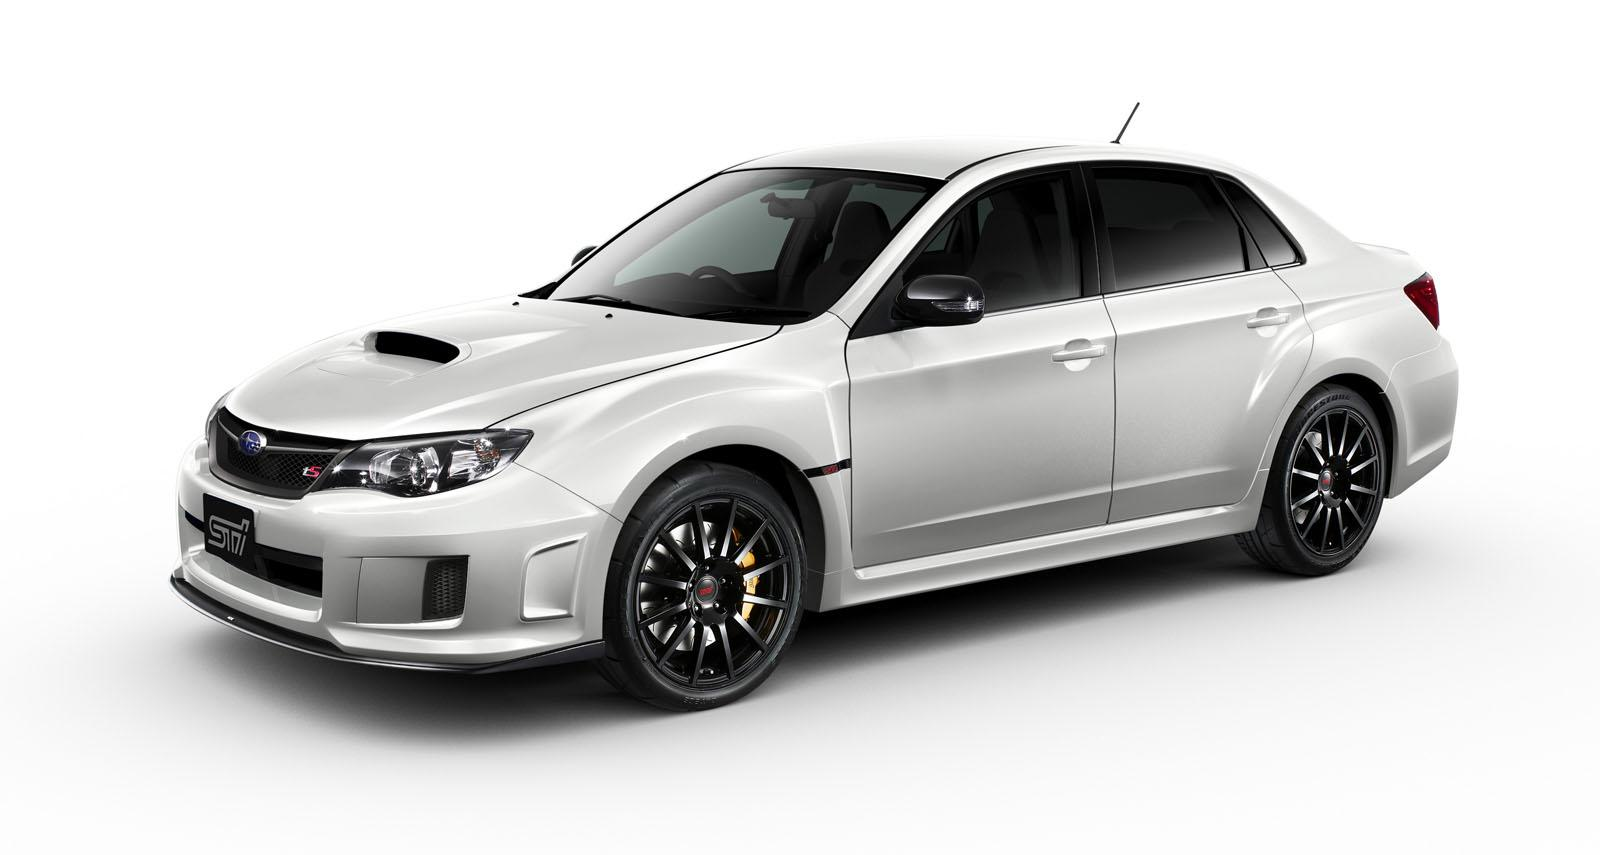 Subaru WRX STI tS Type RA 13 Subaru introduces 2014 WRX STI tS Type RA in Japan